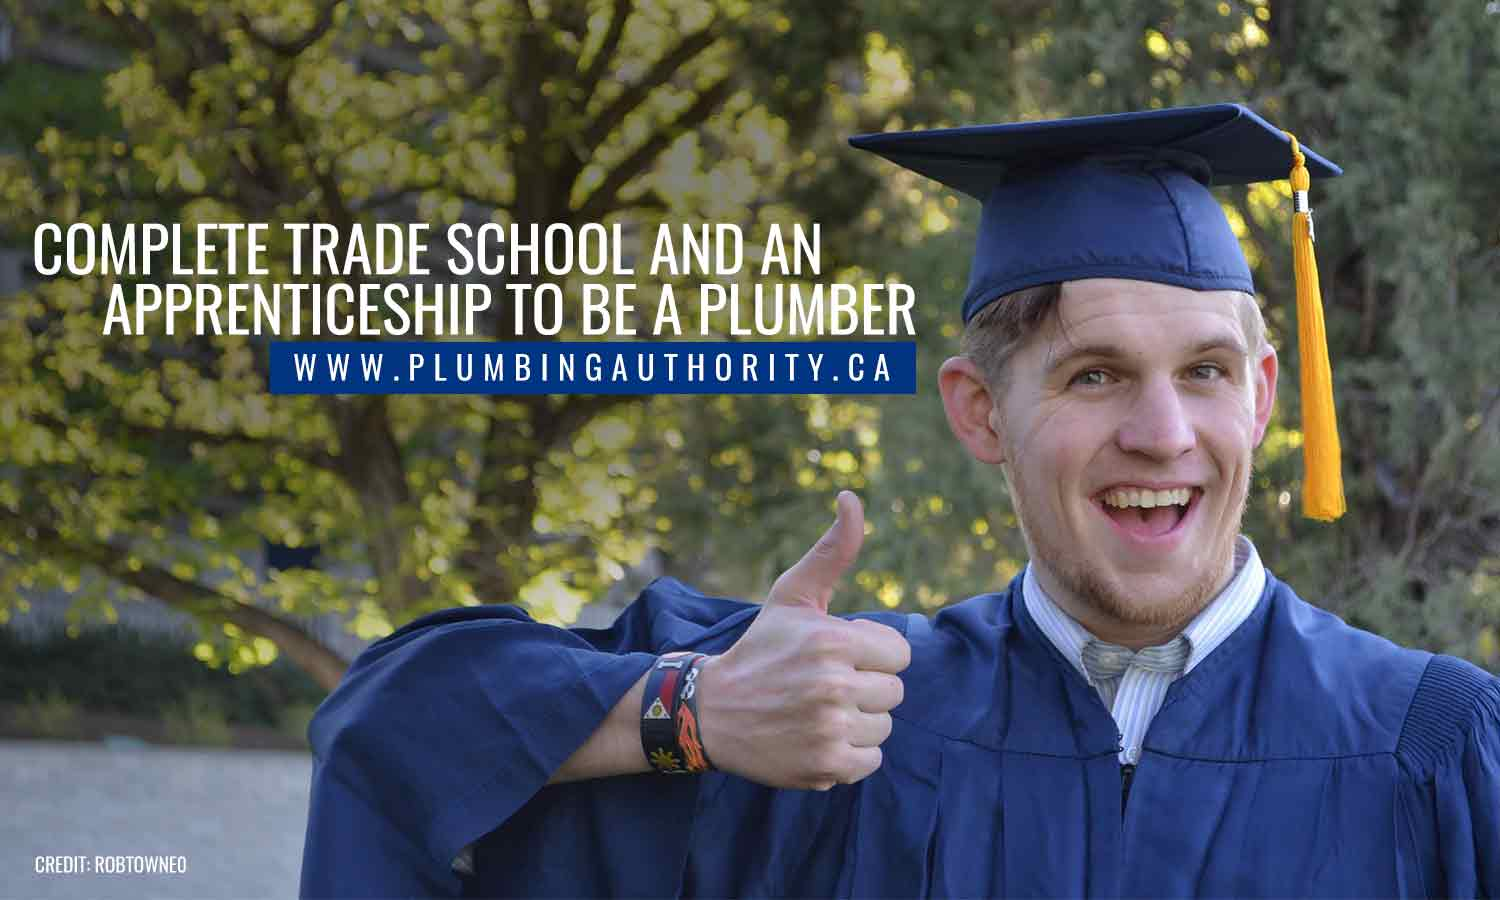 Complete trade school and an apprenticeship to be a plumber